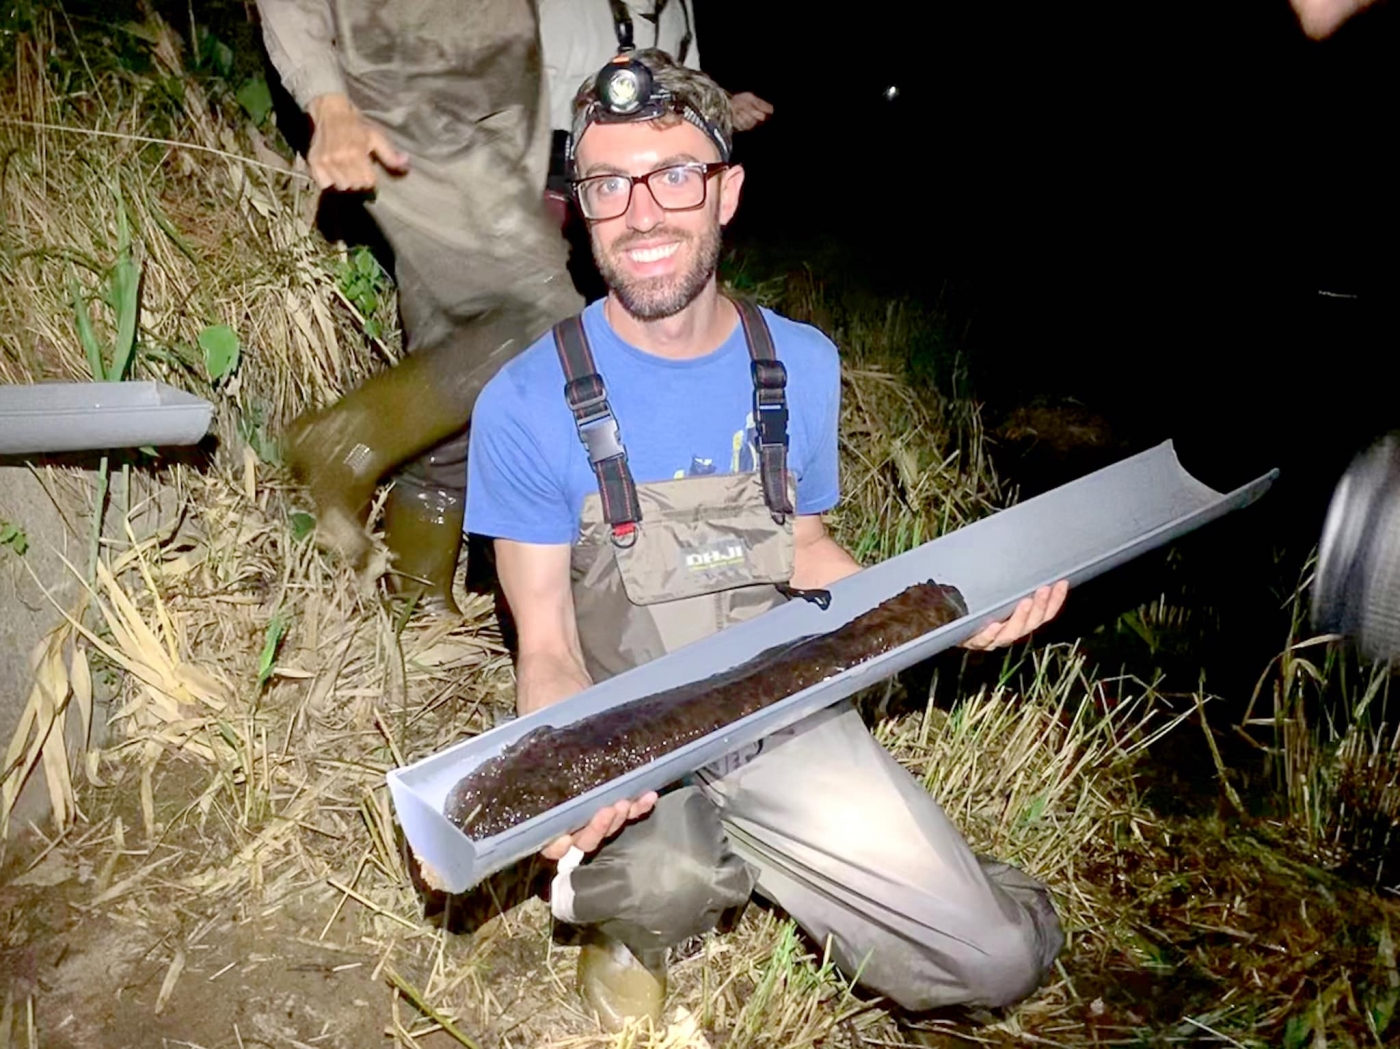 Reptile Discovery Center keeper Matt Neff with a wild Japanese giant salamander in Hiroshima, Japan.